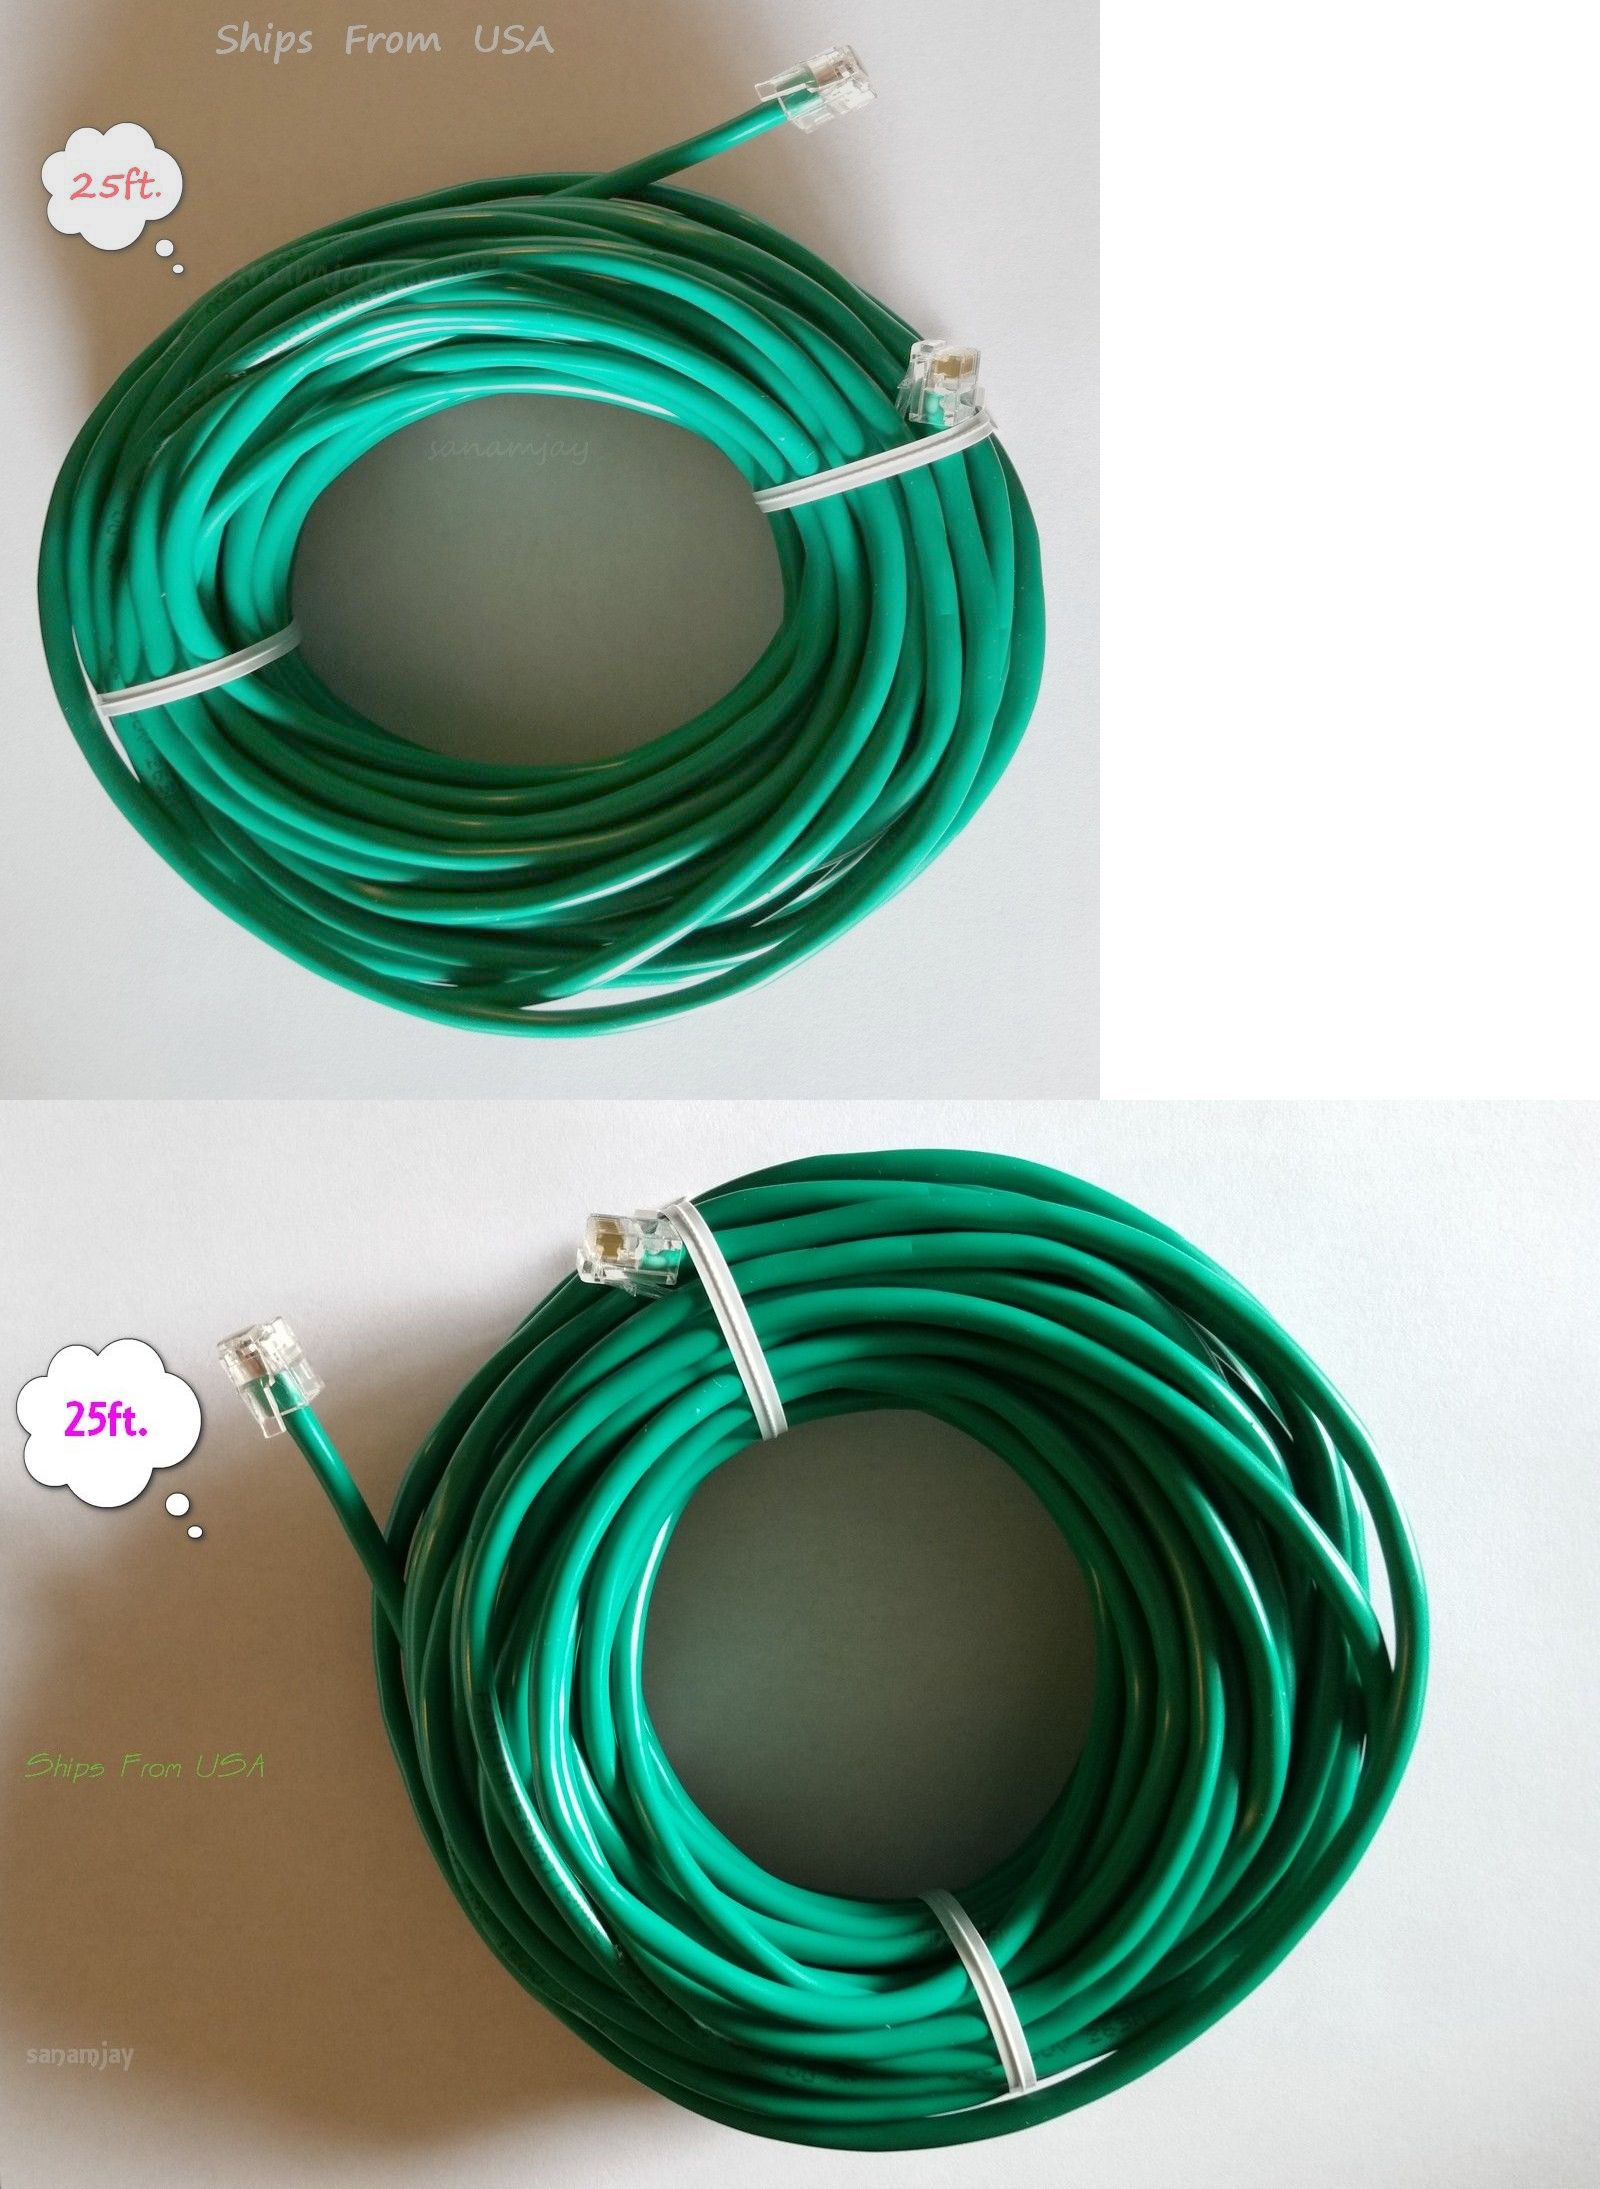 medium resolution of dsl phone cables rj 11 67857 25ft rj11 rj12 cat5e green dsl telephone data cable for centurylink atandt etc buy it now only 11 99 on ebay phone